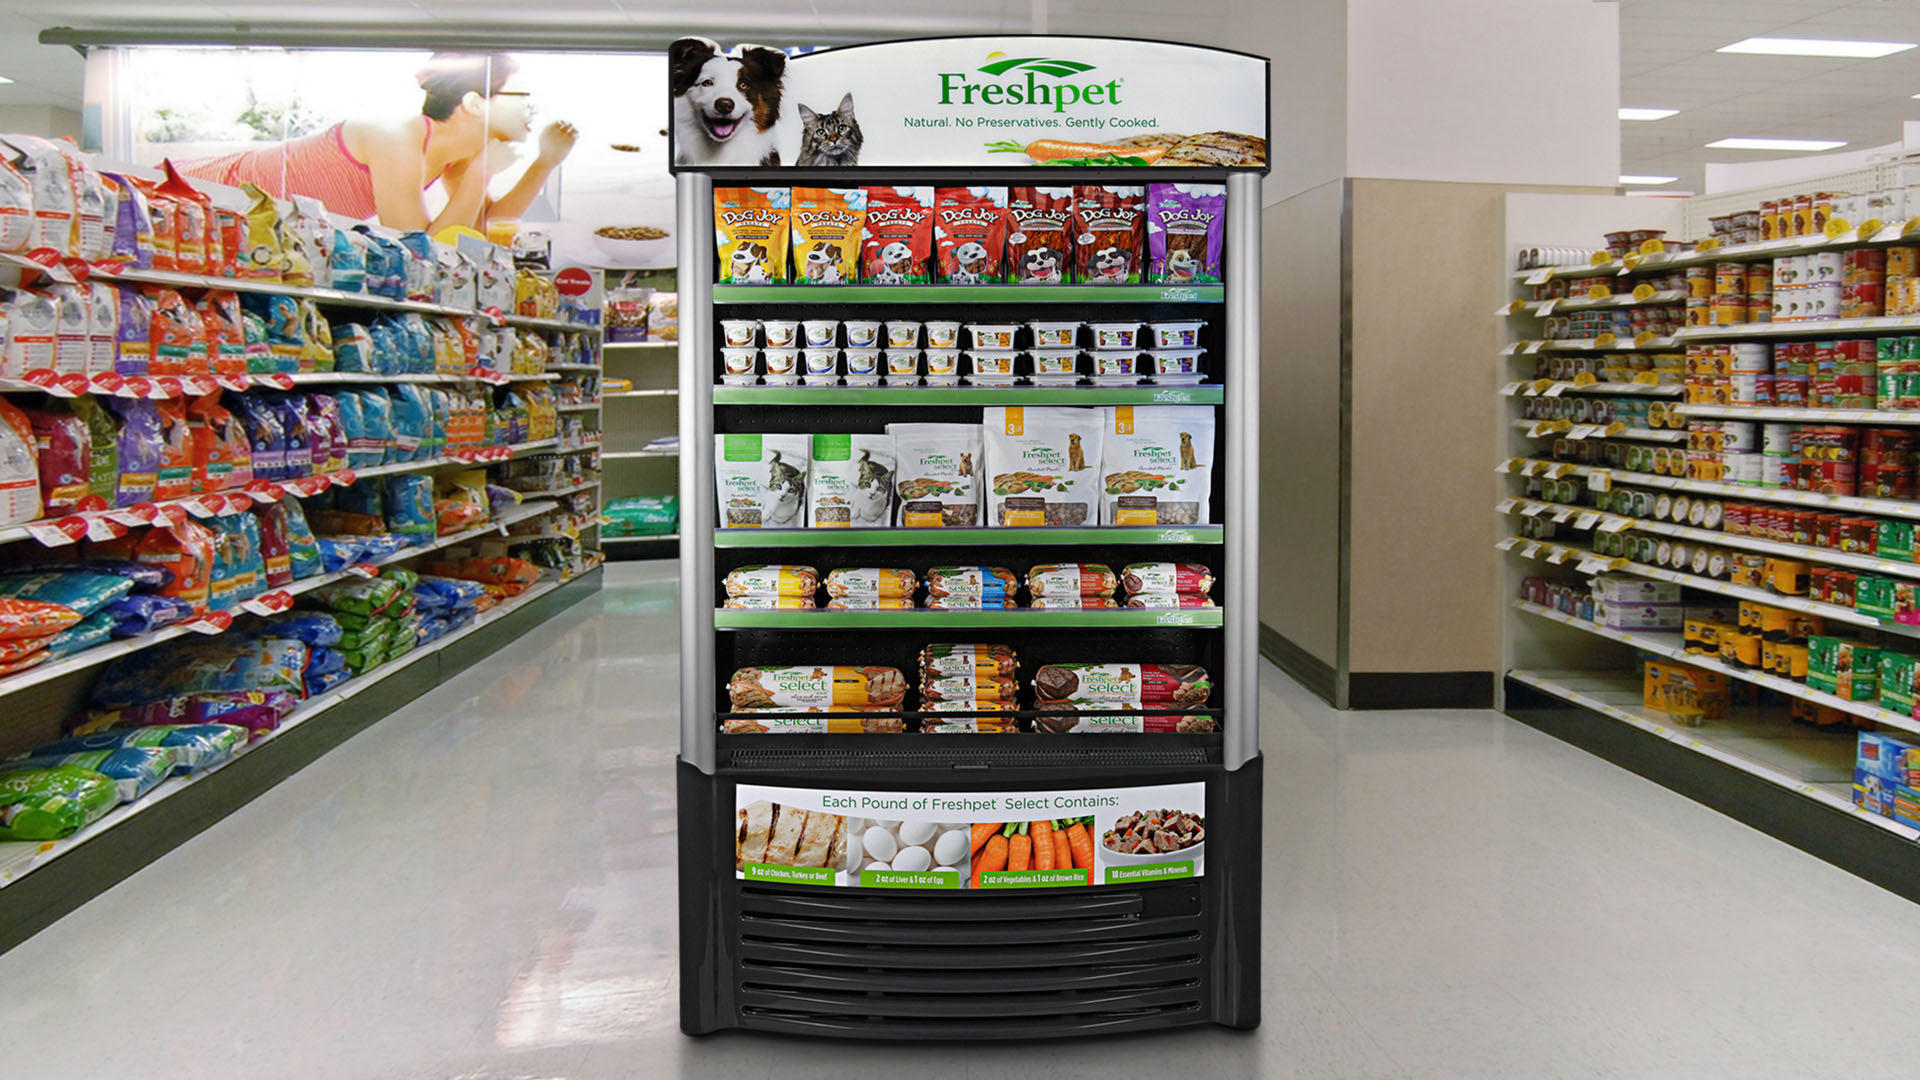 A Freshpet refrigerator located in a big-box retail store.